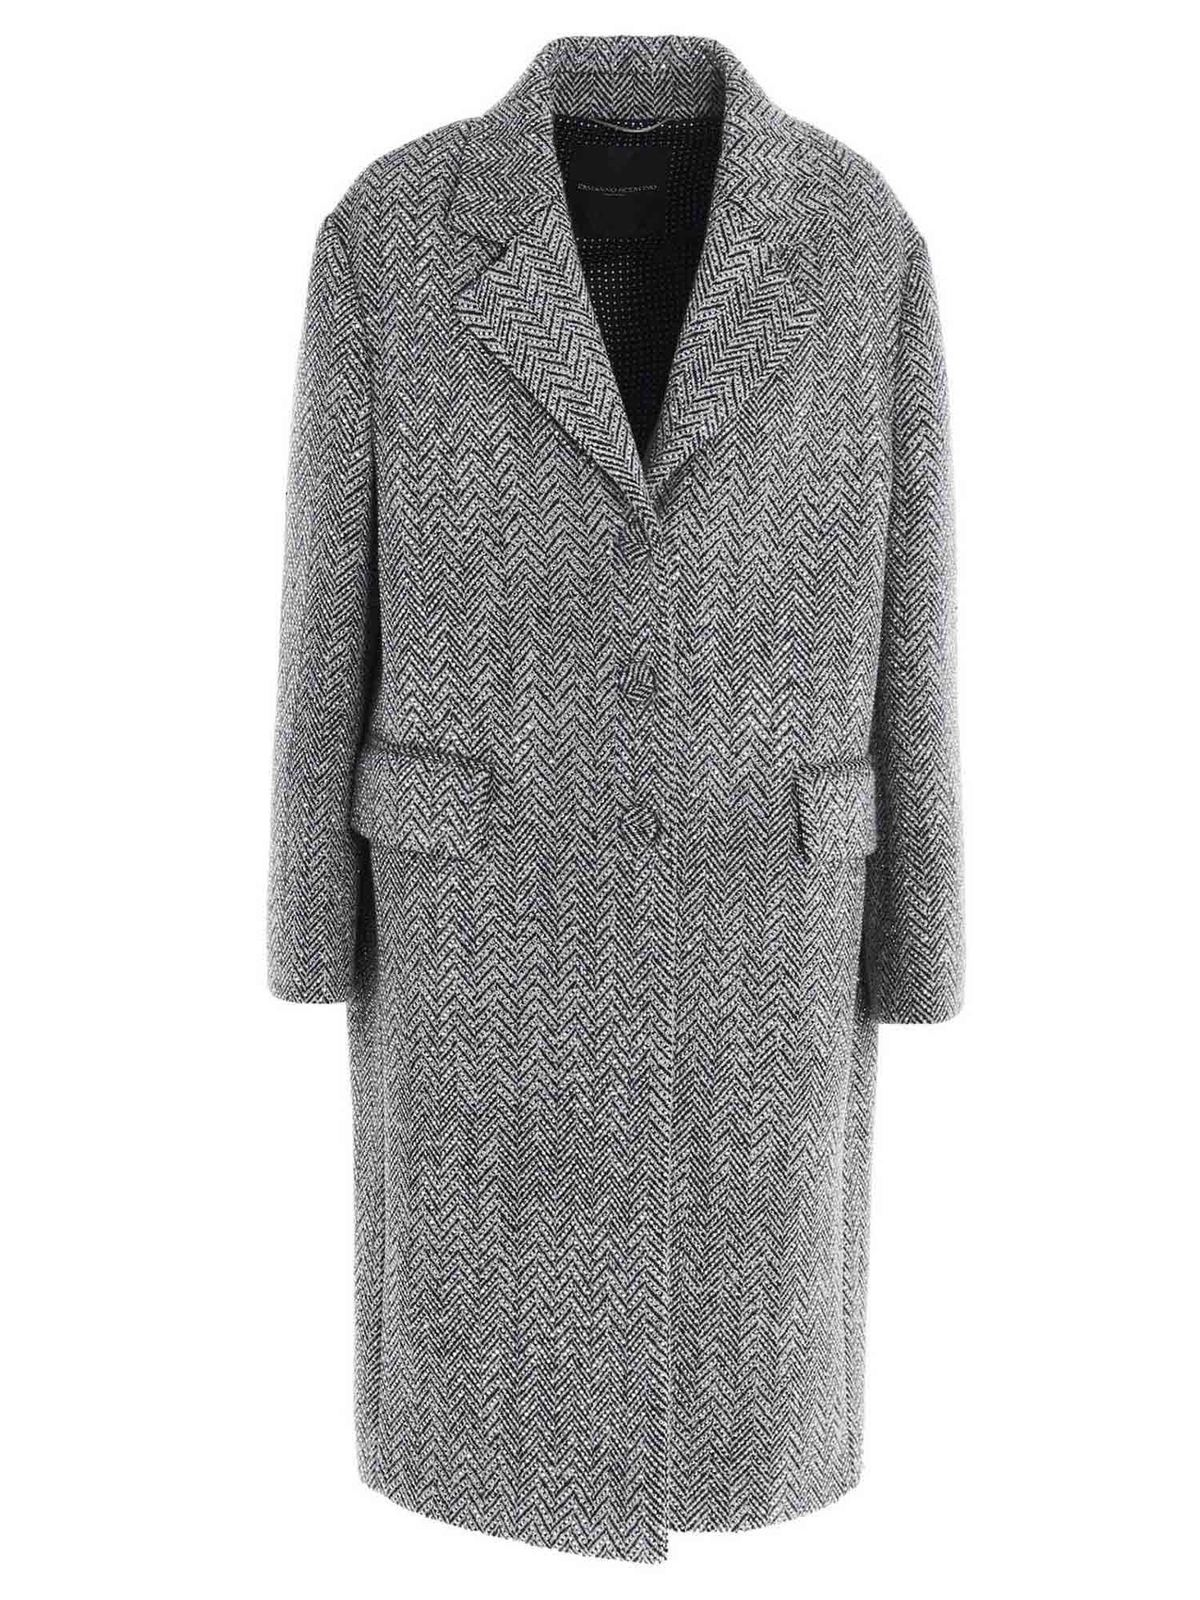 Ermanno Scervino CHEVRON AND RHINESTONE COAT IN GREY